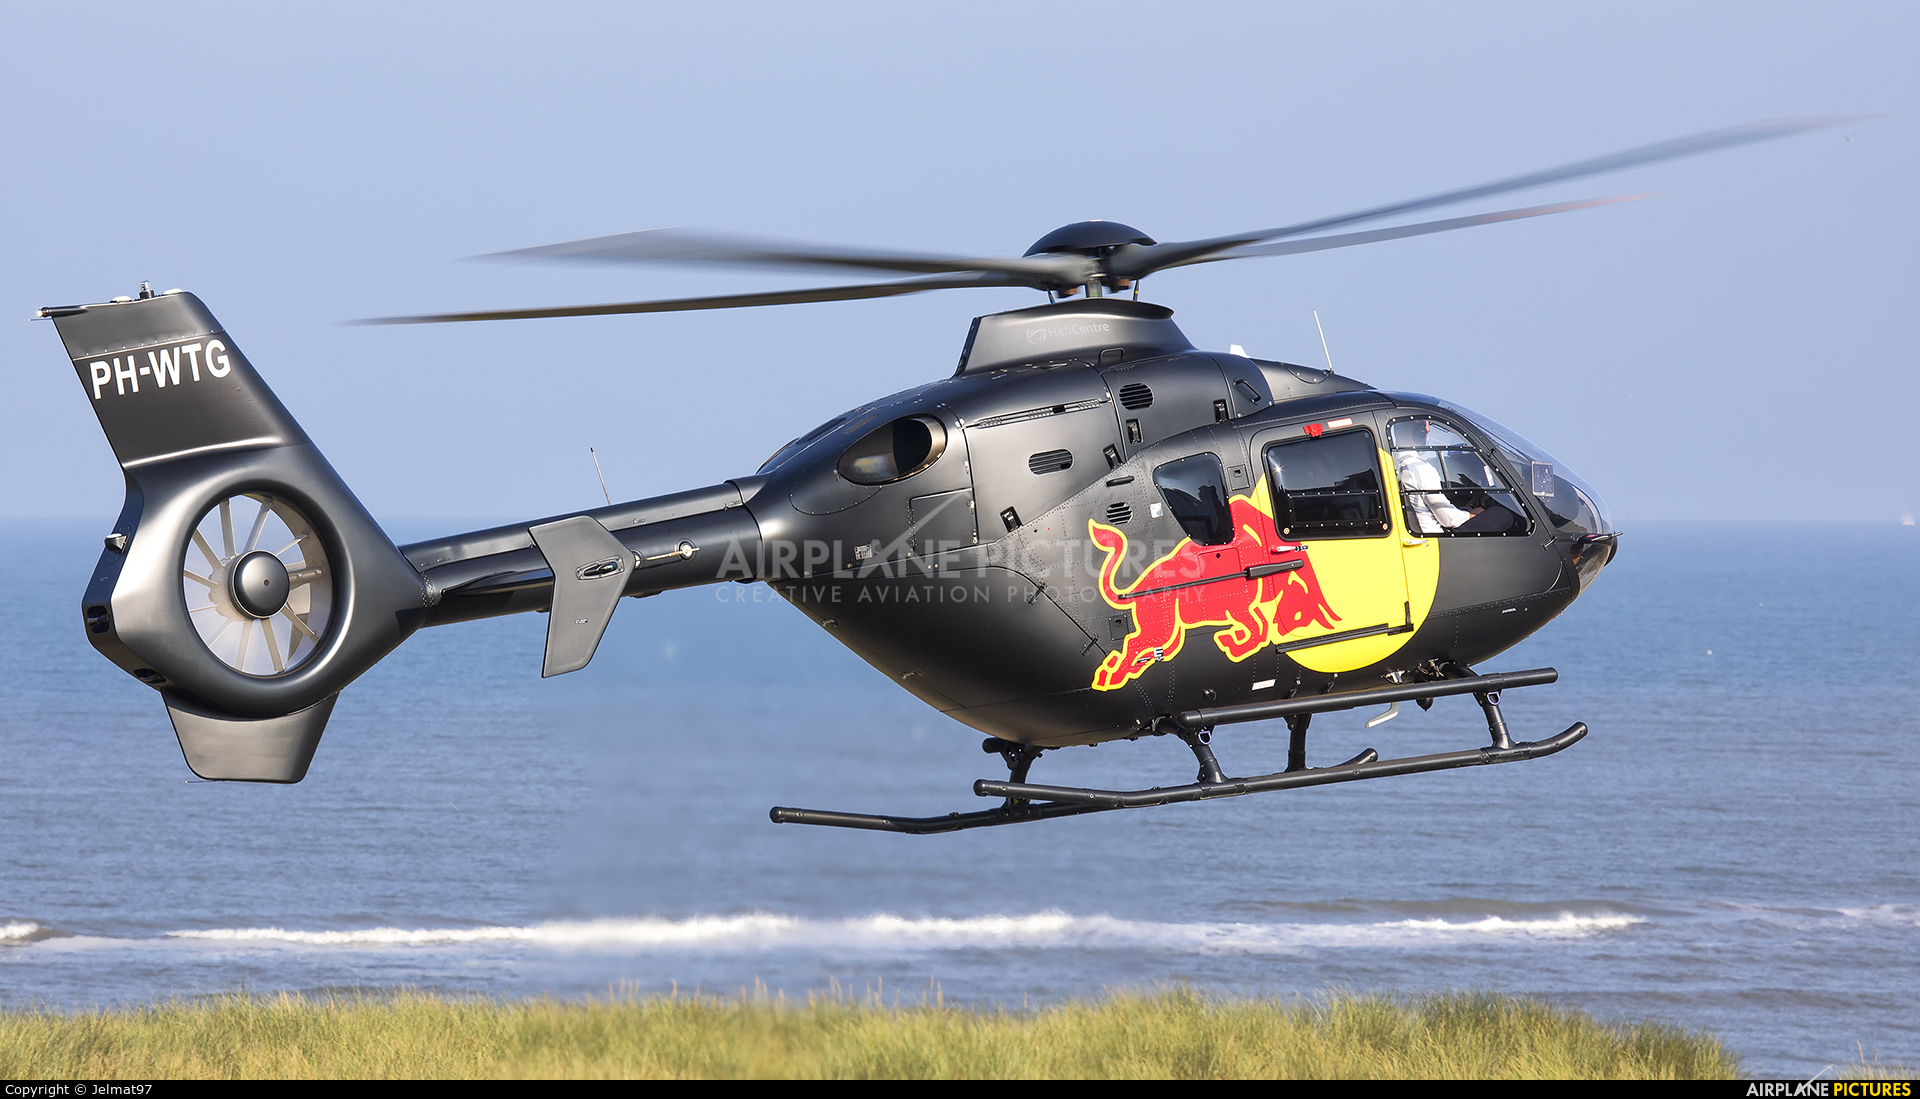 Helicentre PH-WTG aircraft at Off Airport - Netherlands